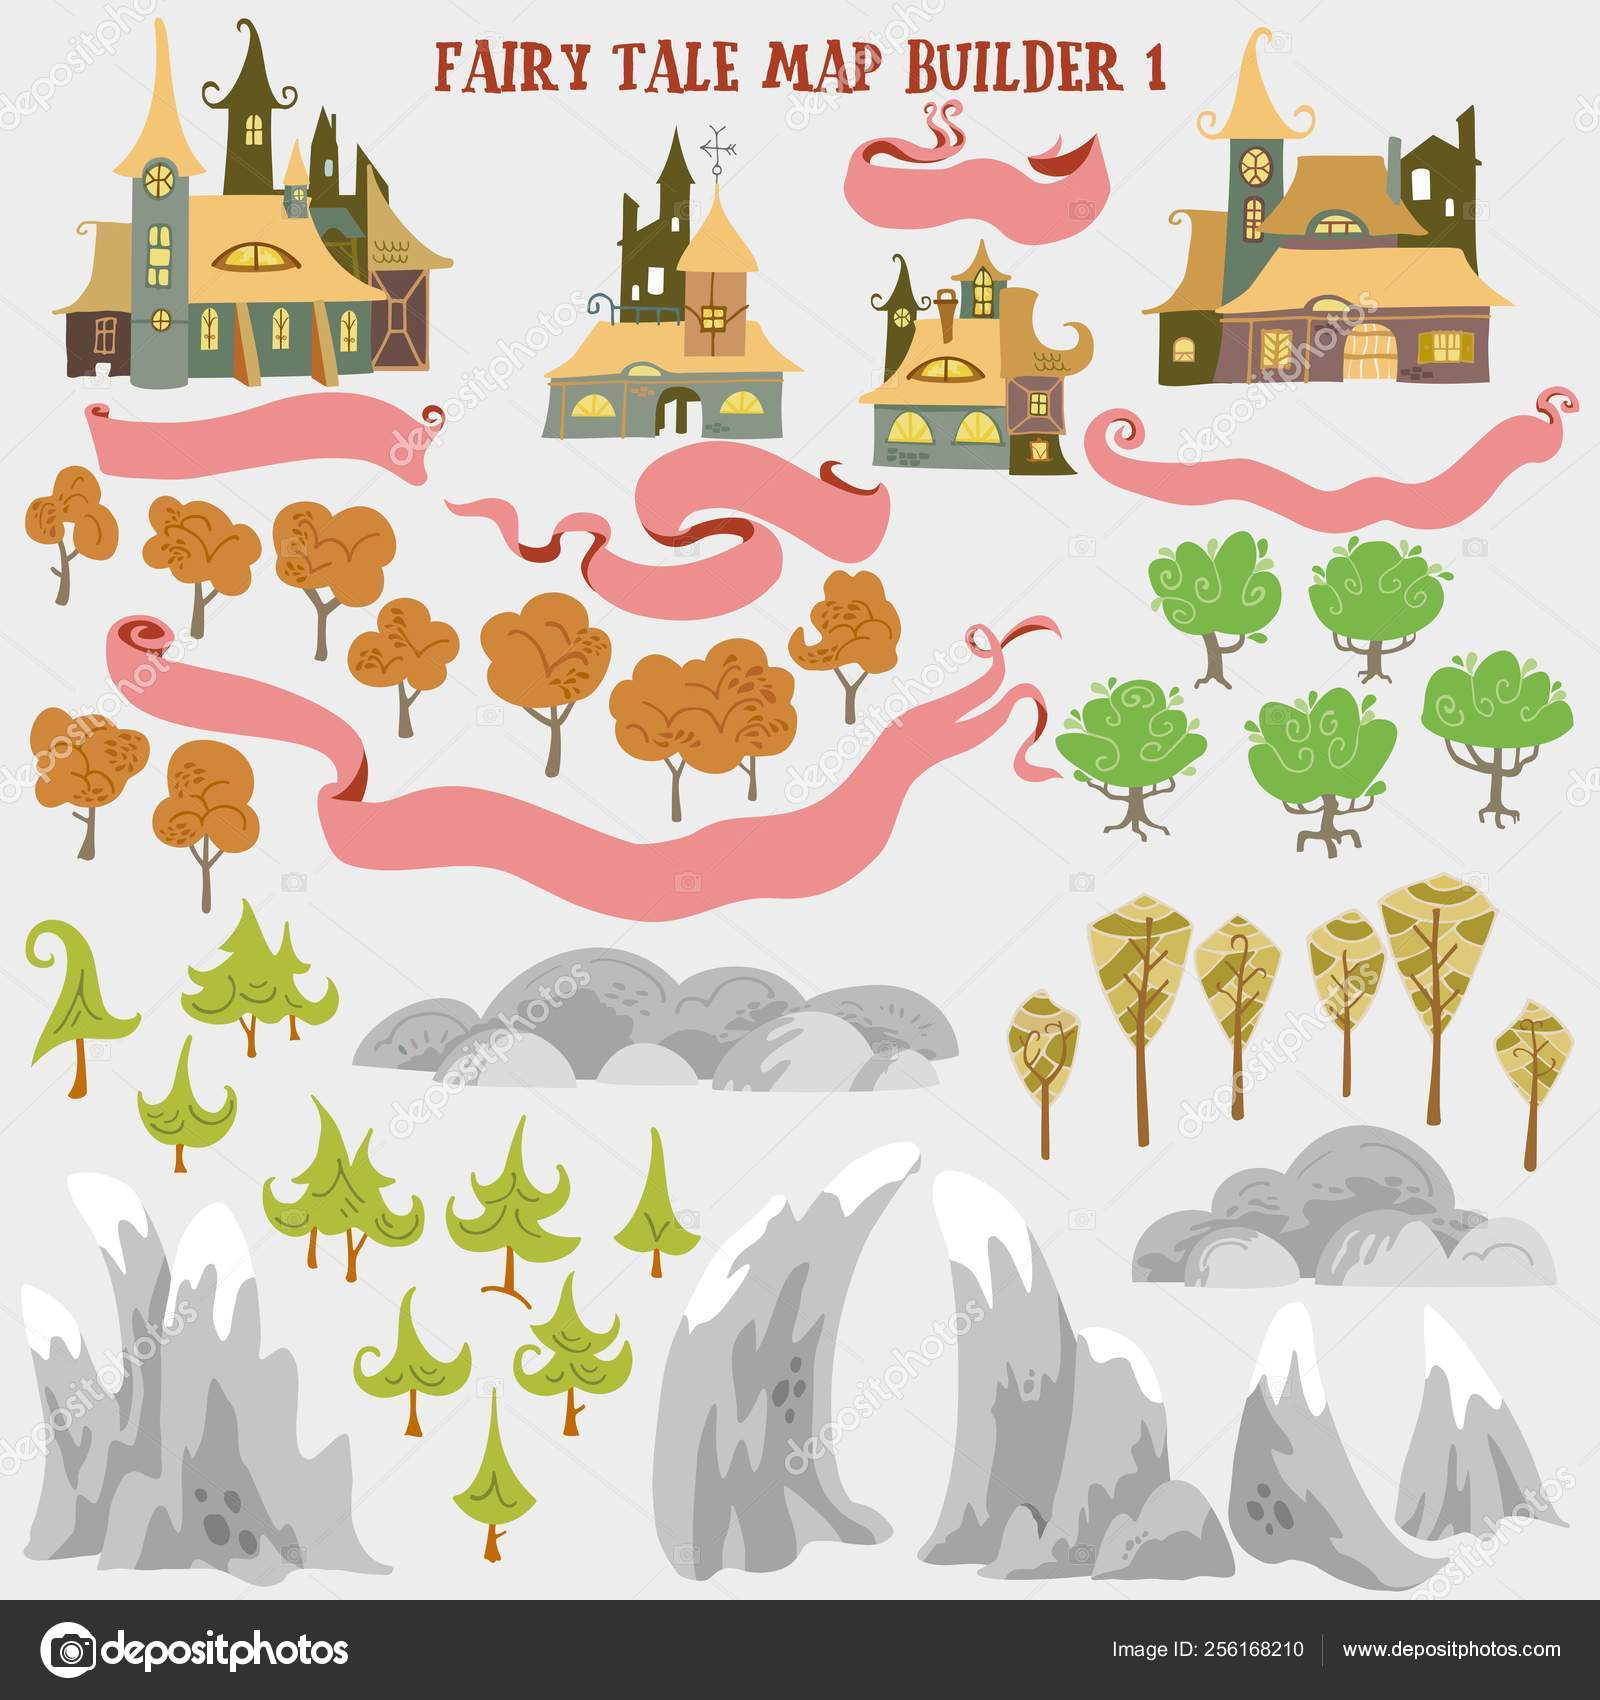 Fairy Tale Fantasy Map Builder Set Everwinter Realm City ... on map creation freeware, housing maps, map engineering company, maps of the world, maps on us, map software for os x, map maker pro, google maps mania, map captain, map of amtrak through glacier park,